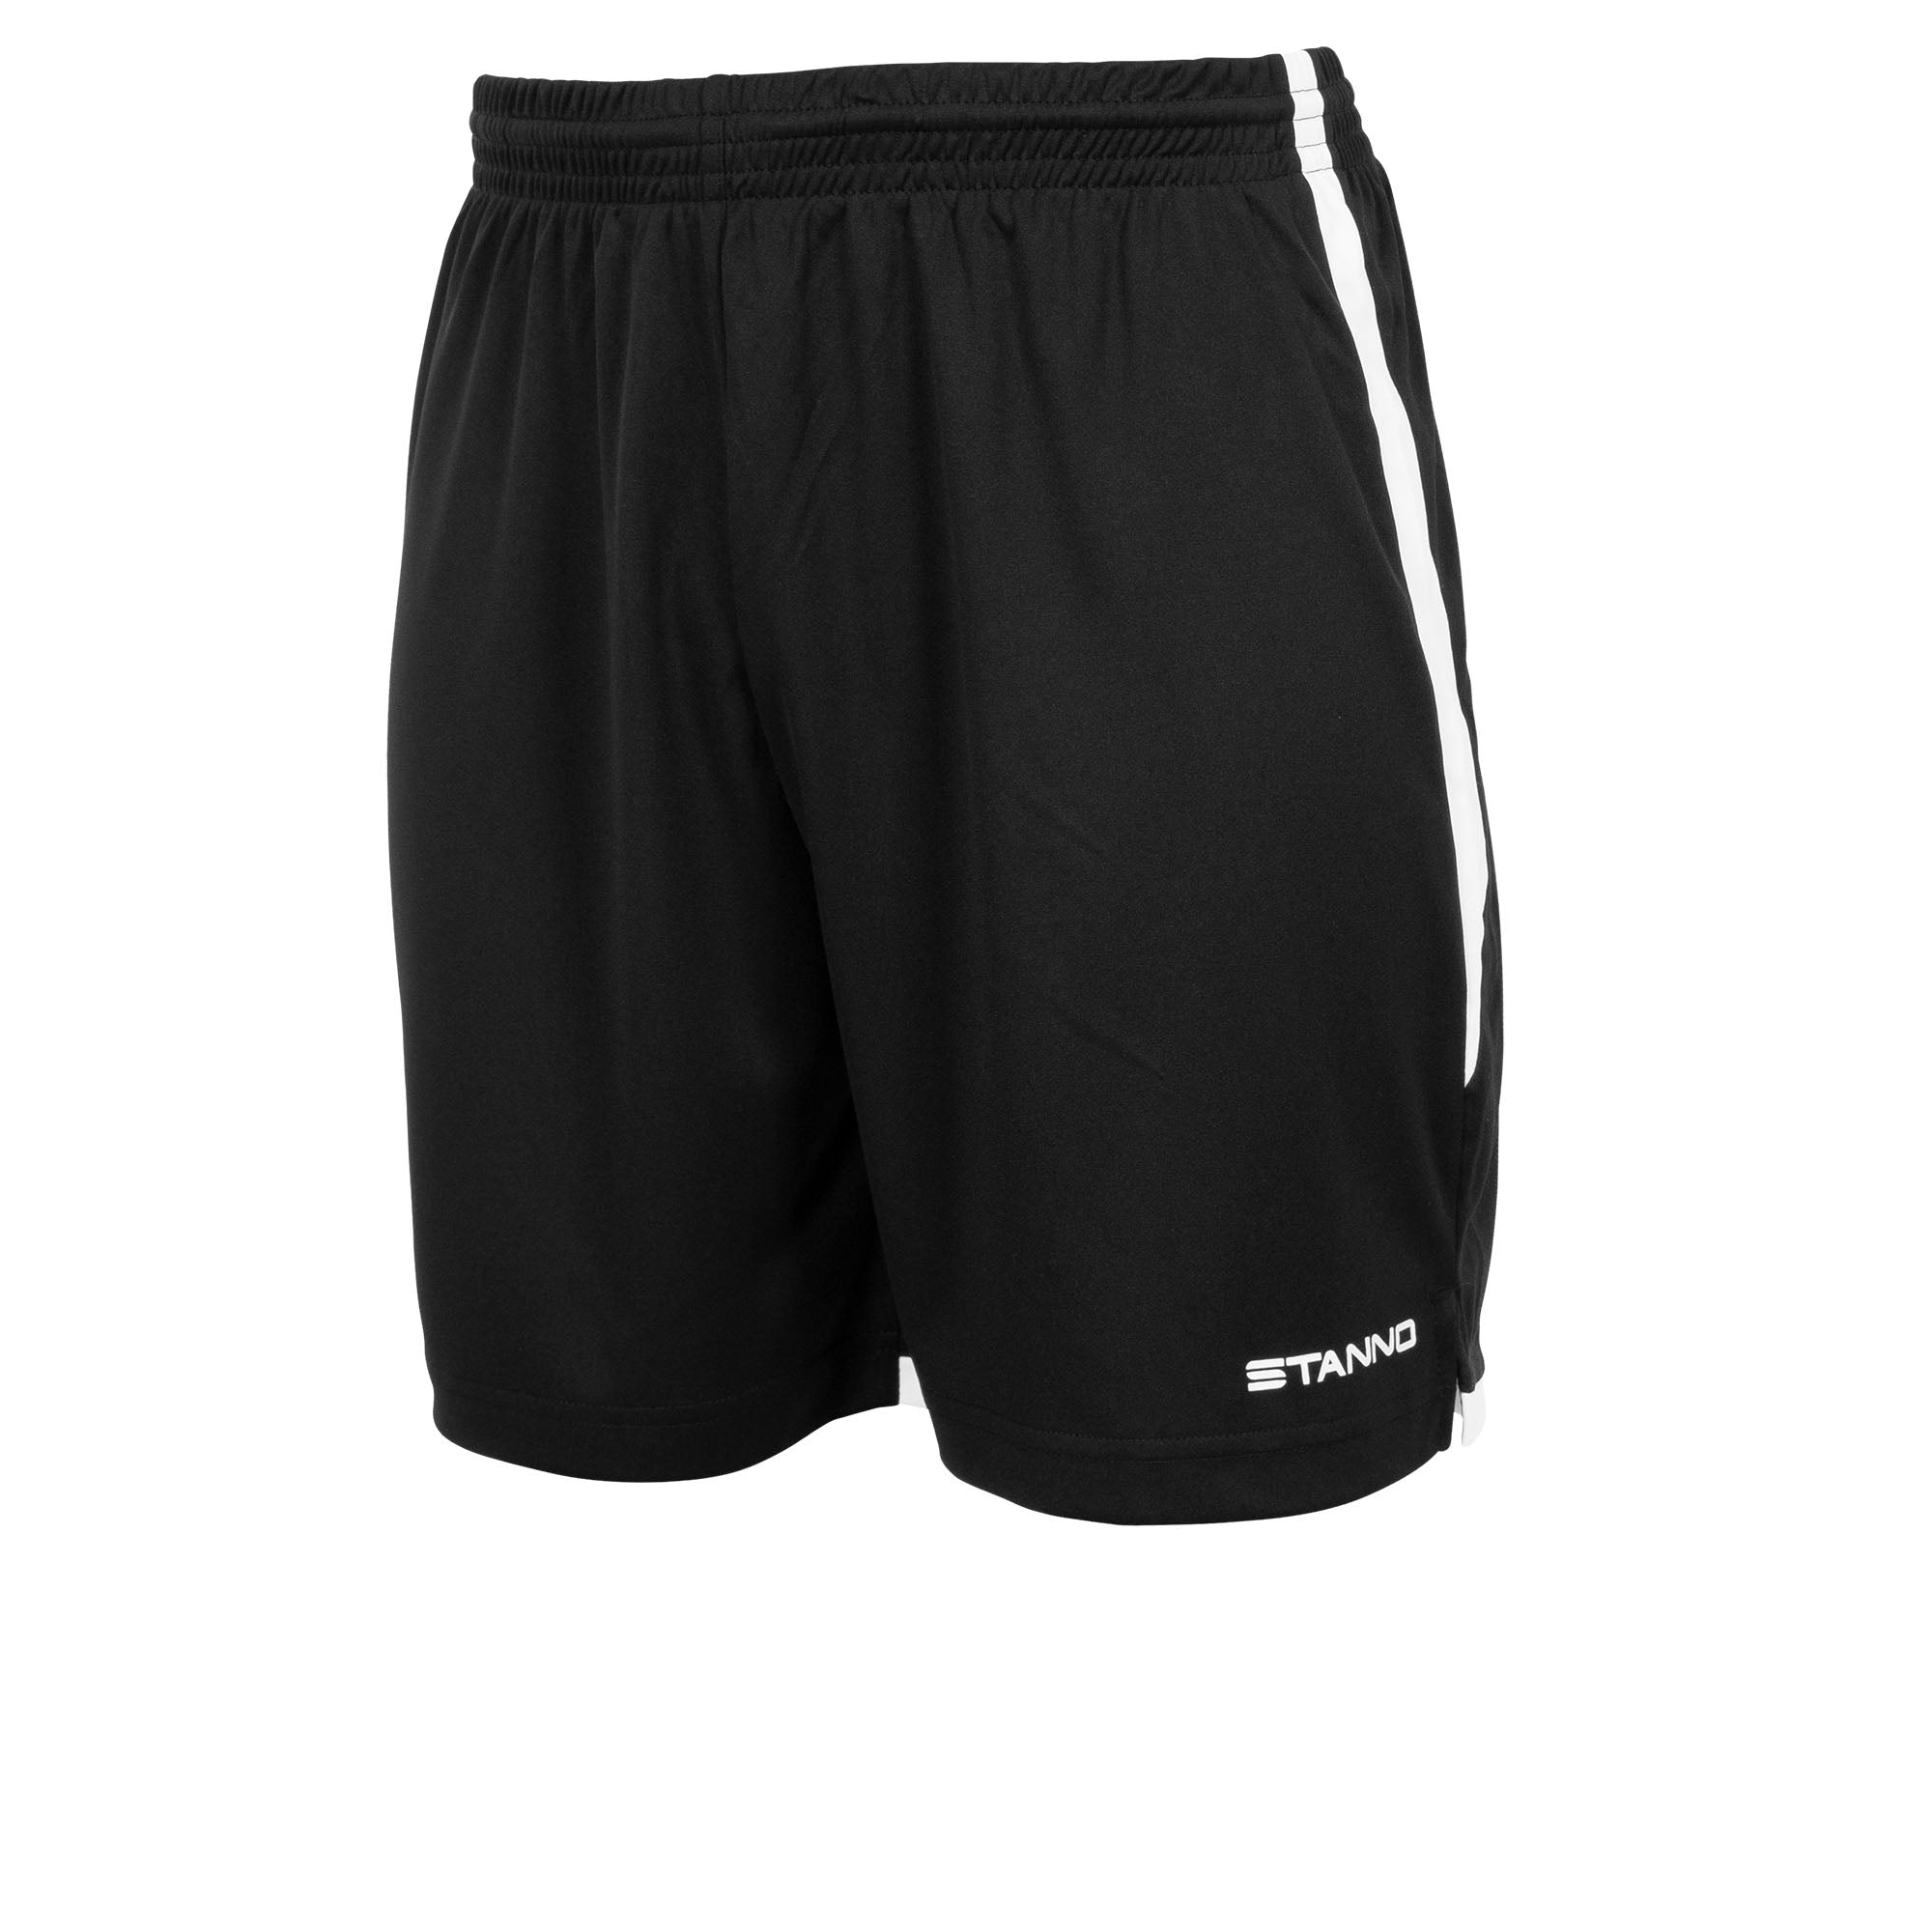 Stanno Focus short in black with white contrast trim down side of the leg, and Stanno text logo on bottom of the left leg.